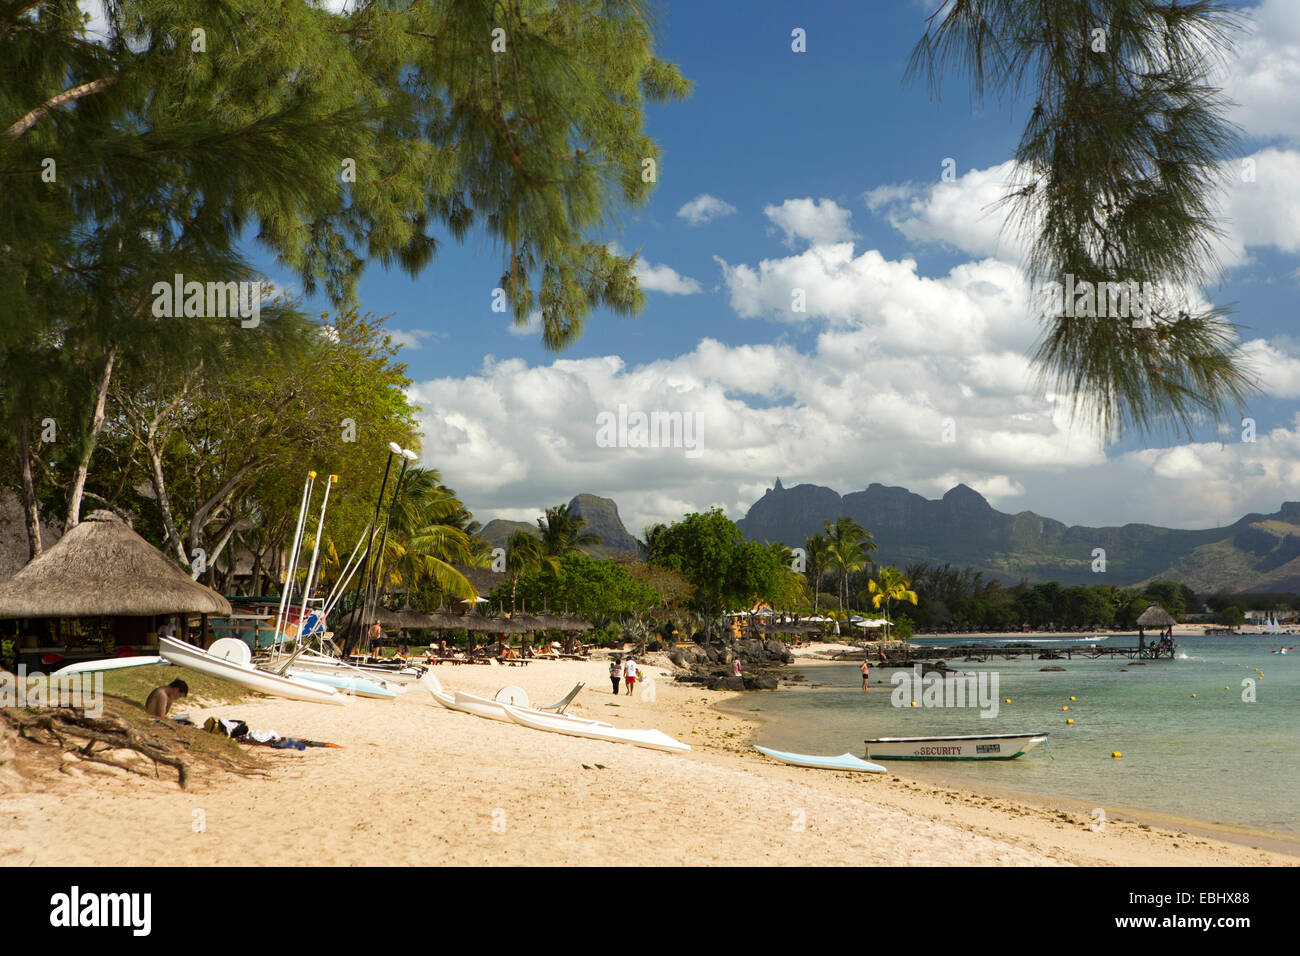 Mauritius, Pointe aux Piments, Turtle Bay, public beach - Stock Image